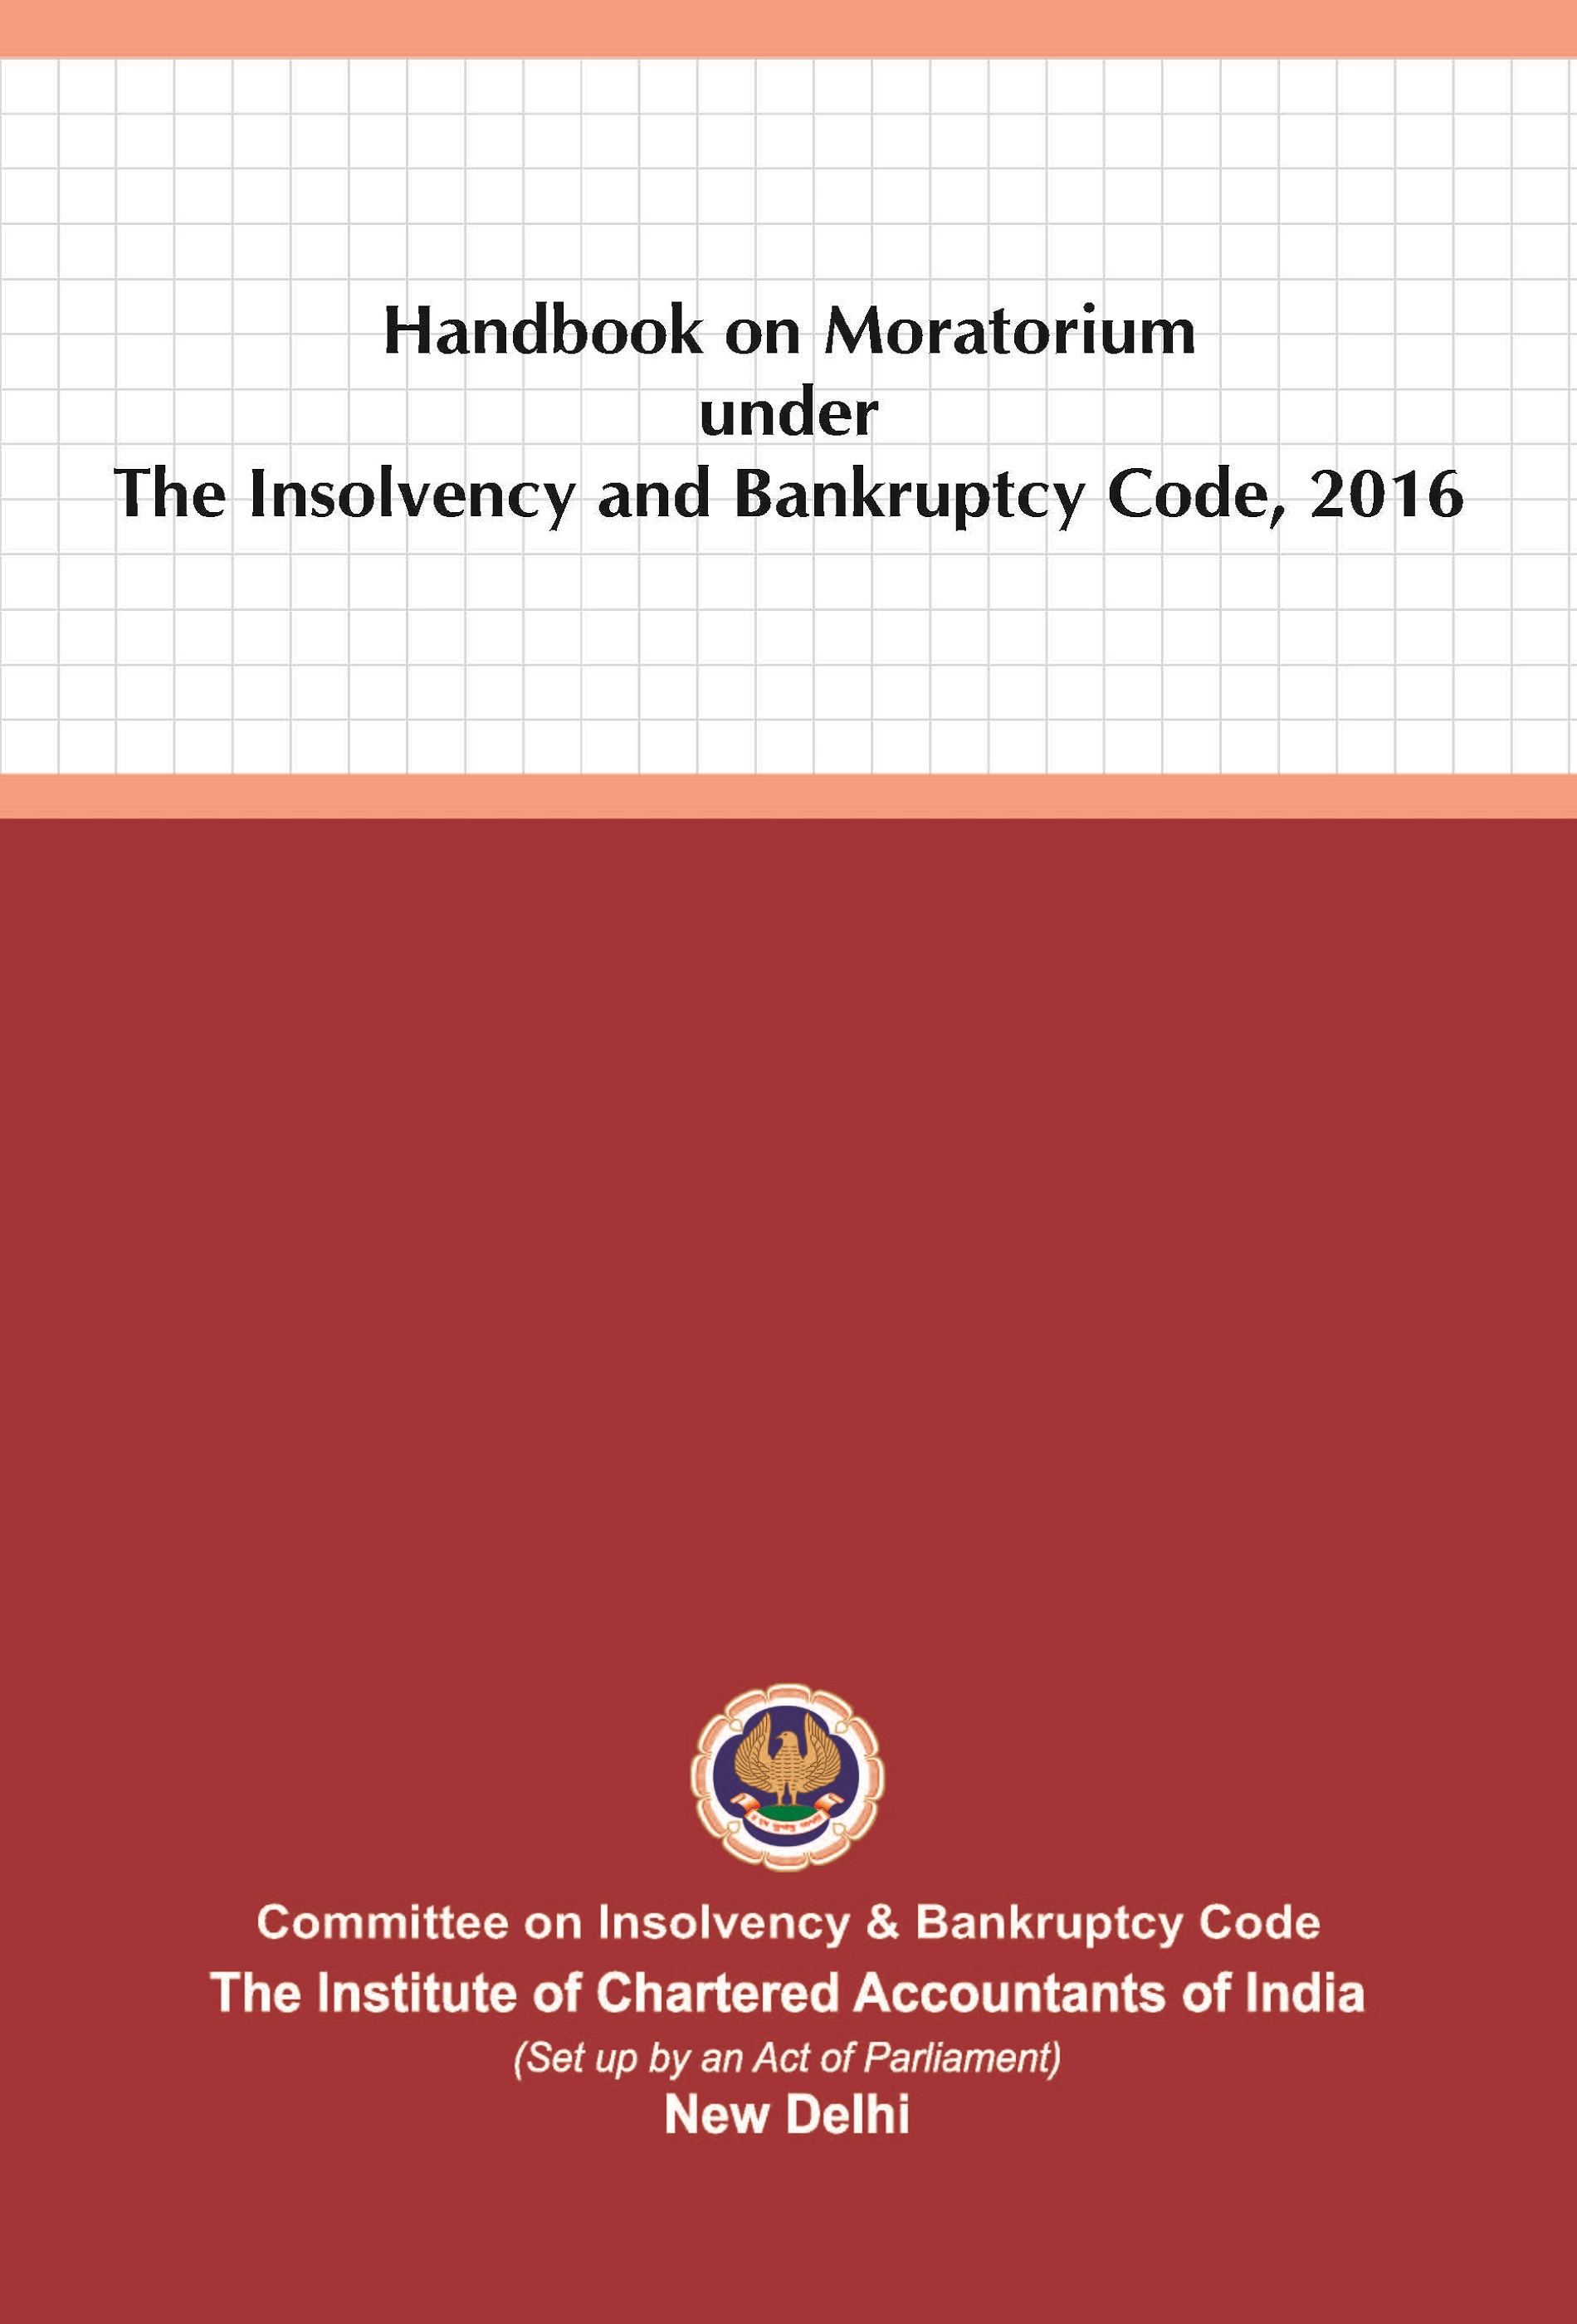 Handbook on Moratorium under The Insolvency and Bankruptcy Code, 2016 (June, 2021)